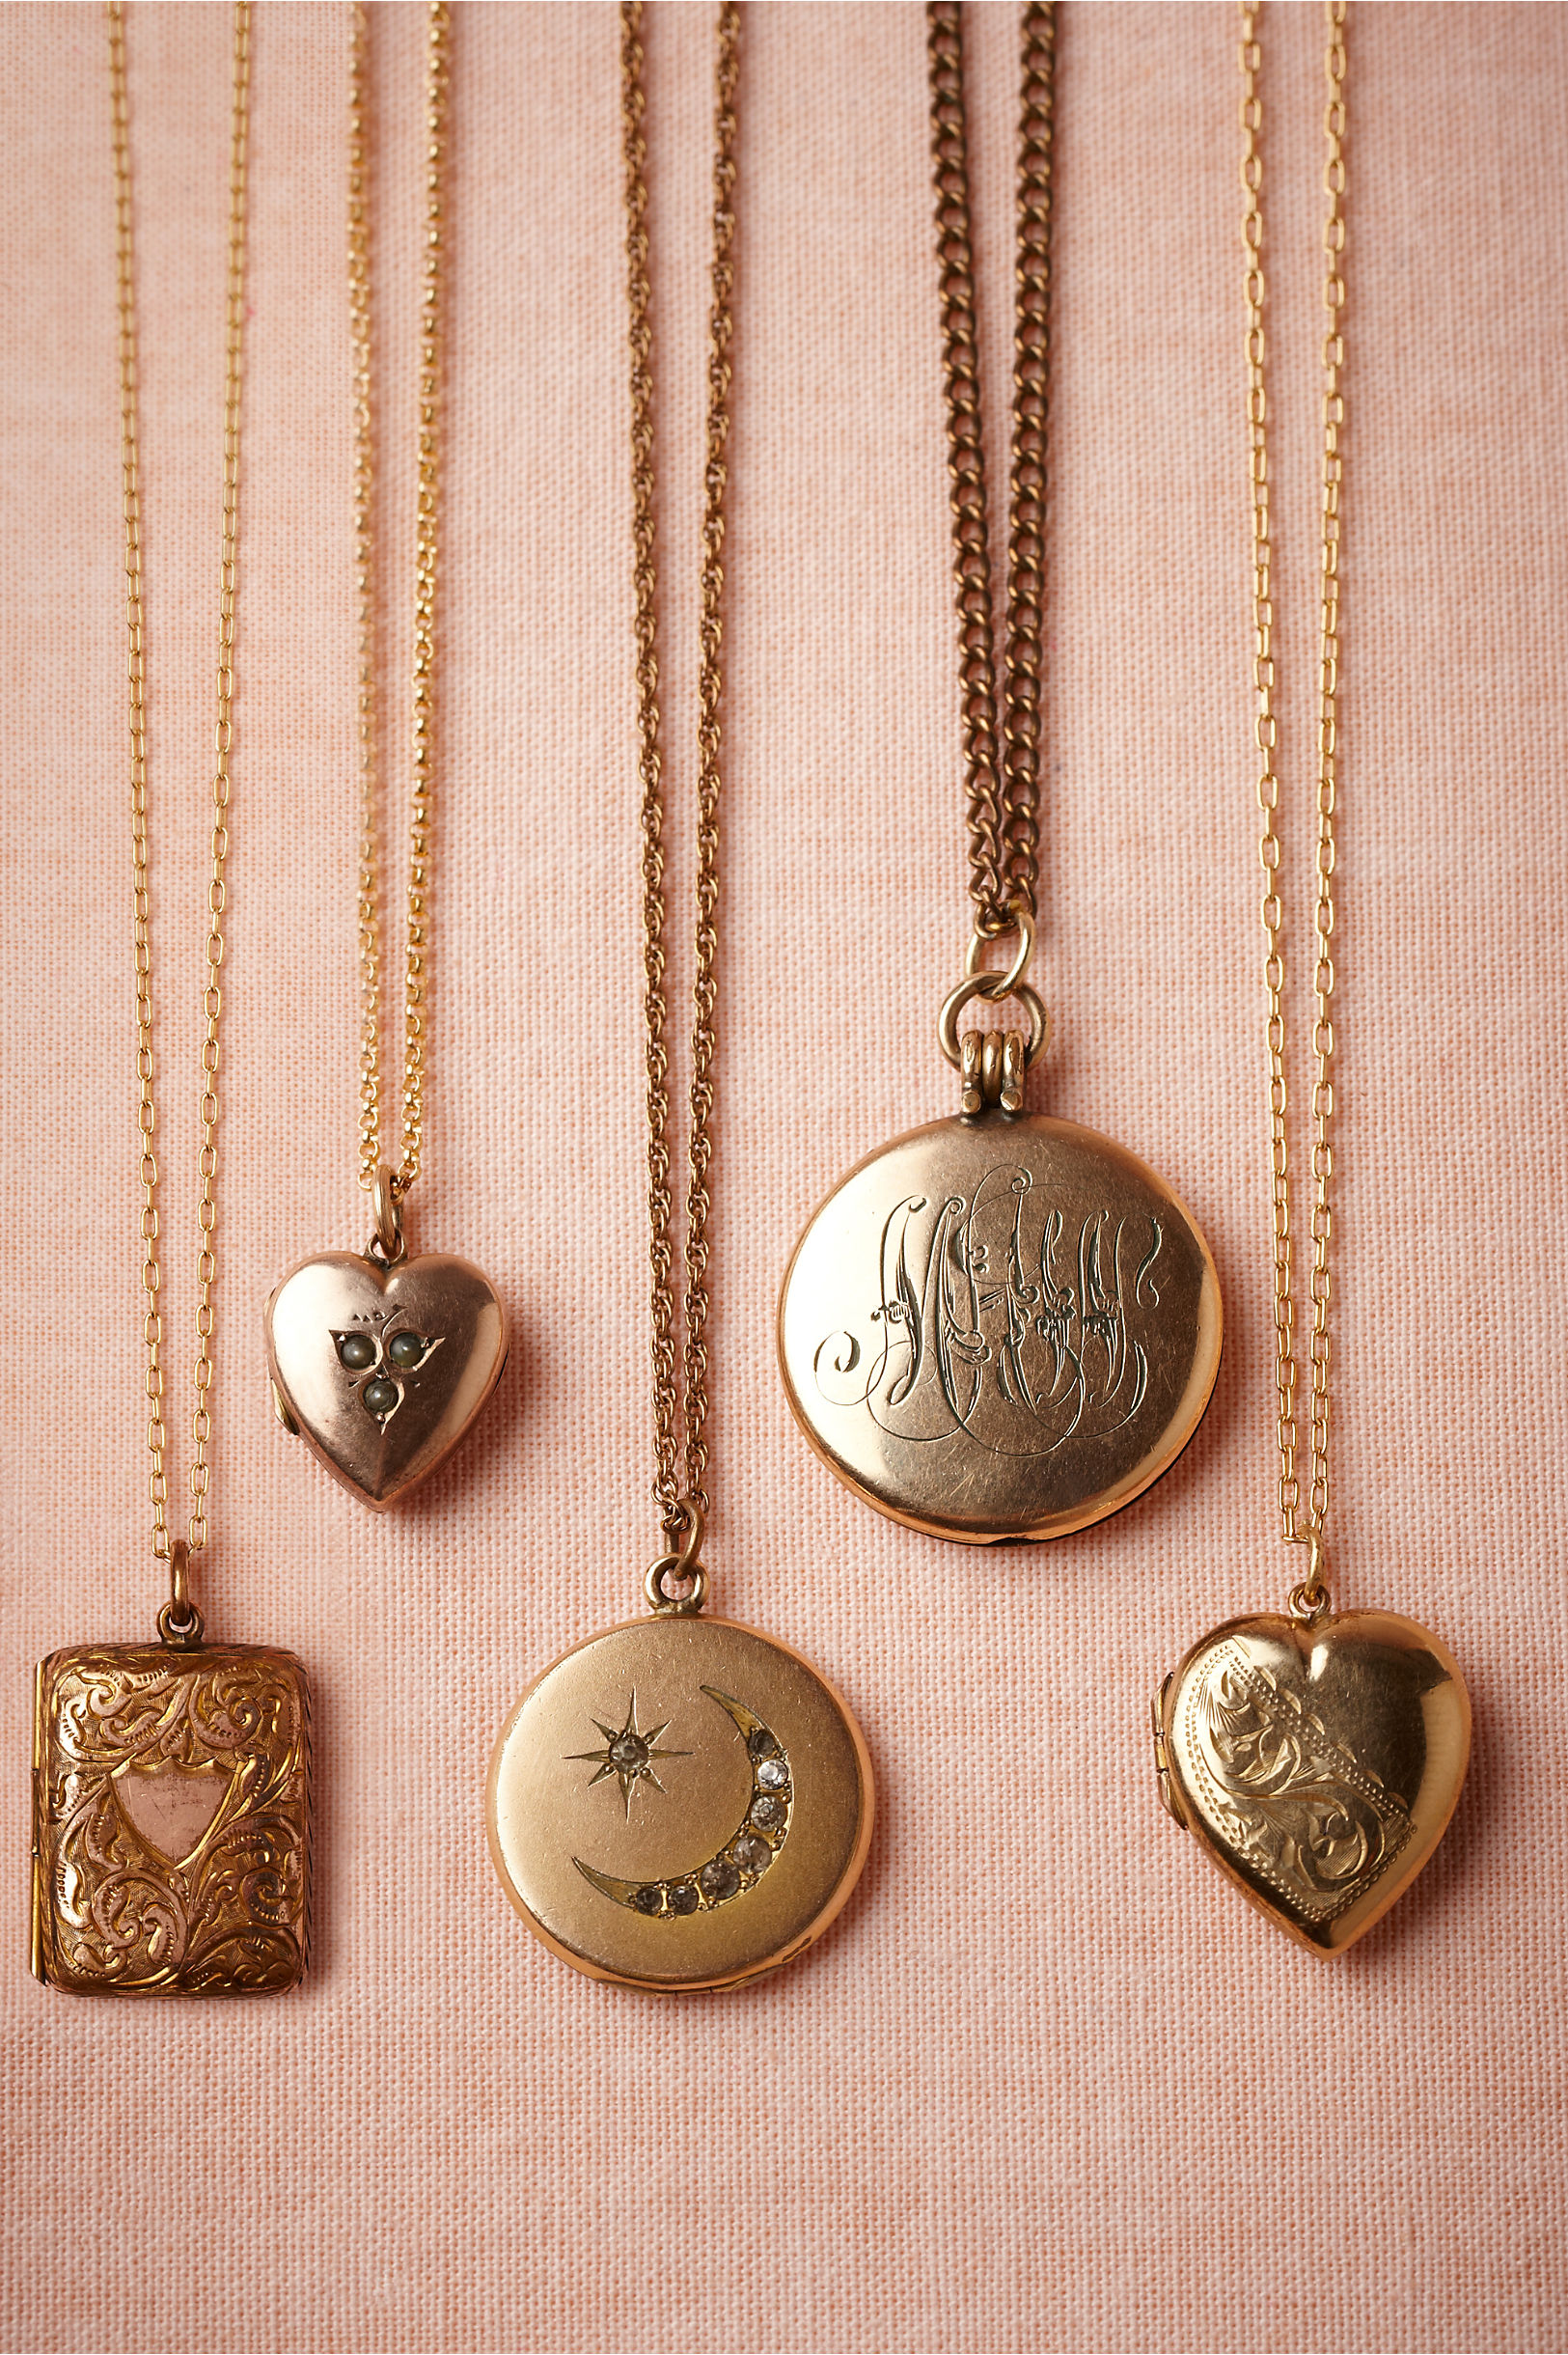 grandma zm hover kaystore kay sterling to locket mv zoom heart en lockets silver